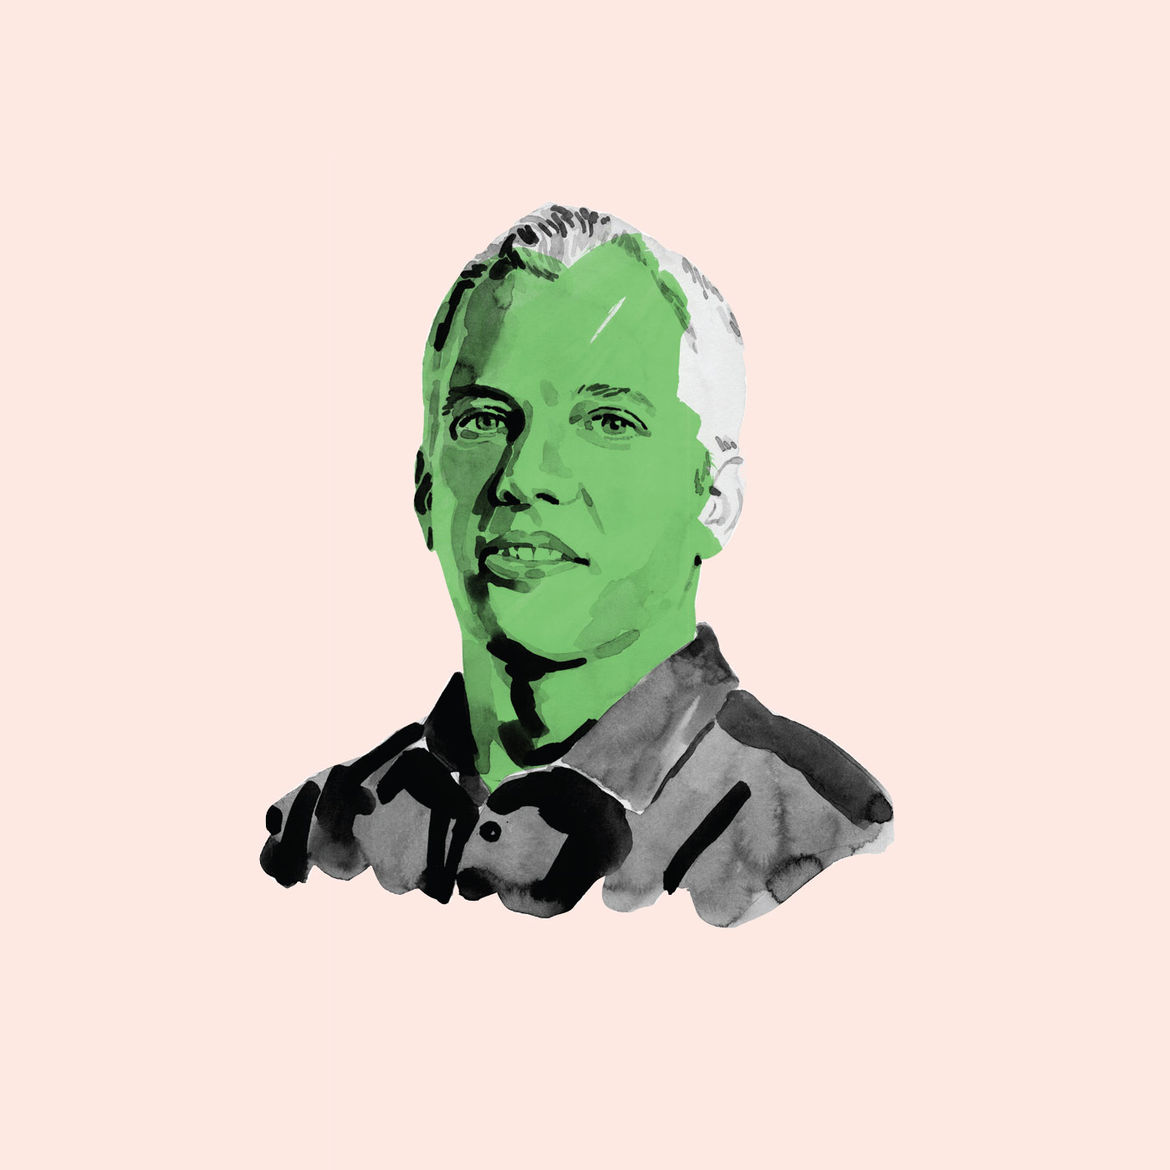 Portrait of urban planner, designer, and author Ryan Gravel.